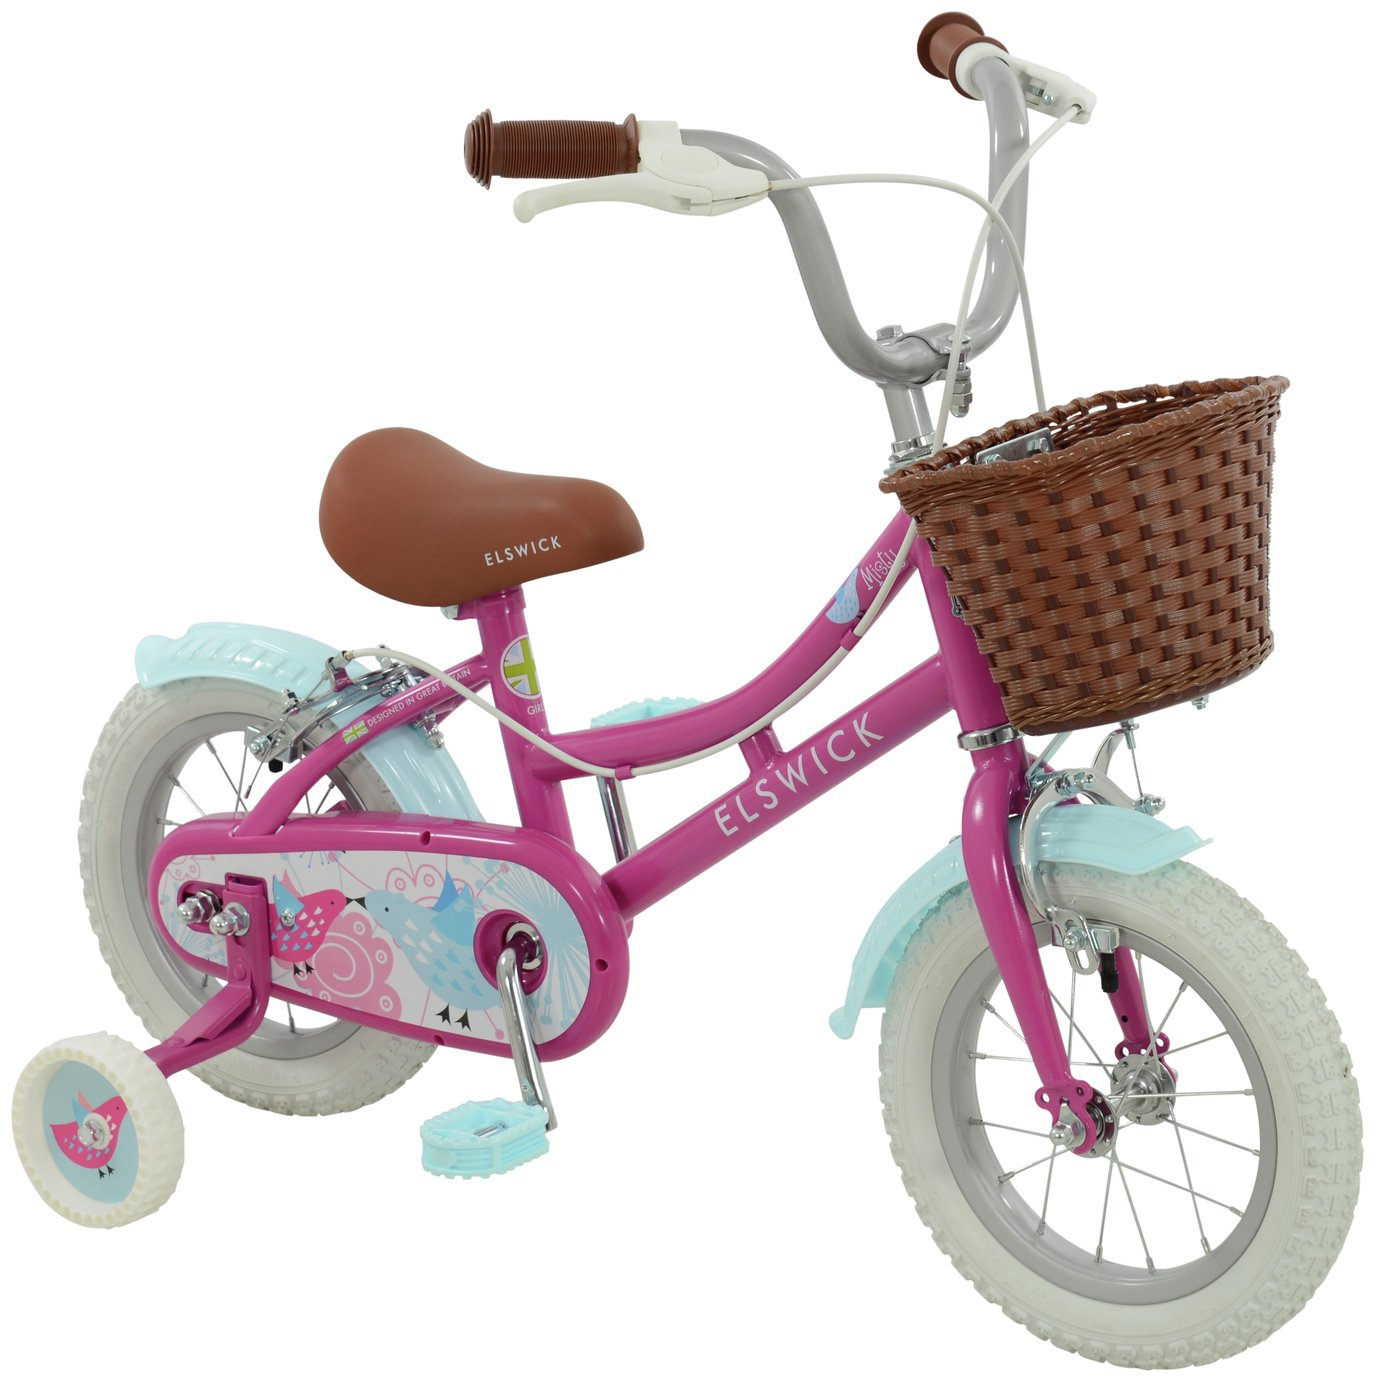 Image of Elswick Misty 12 Inch Kids Heritage Bike